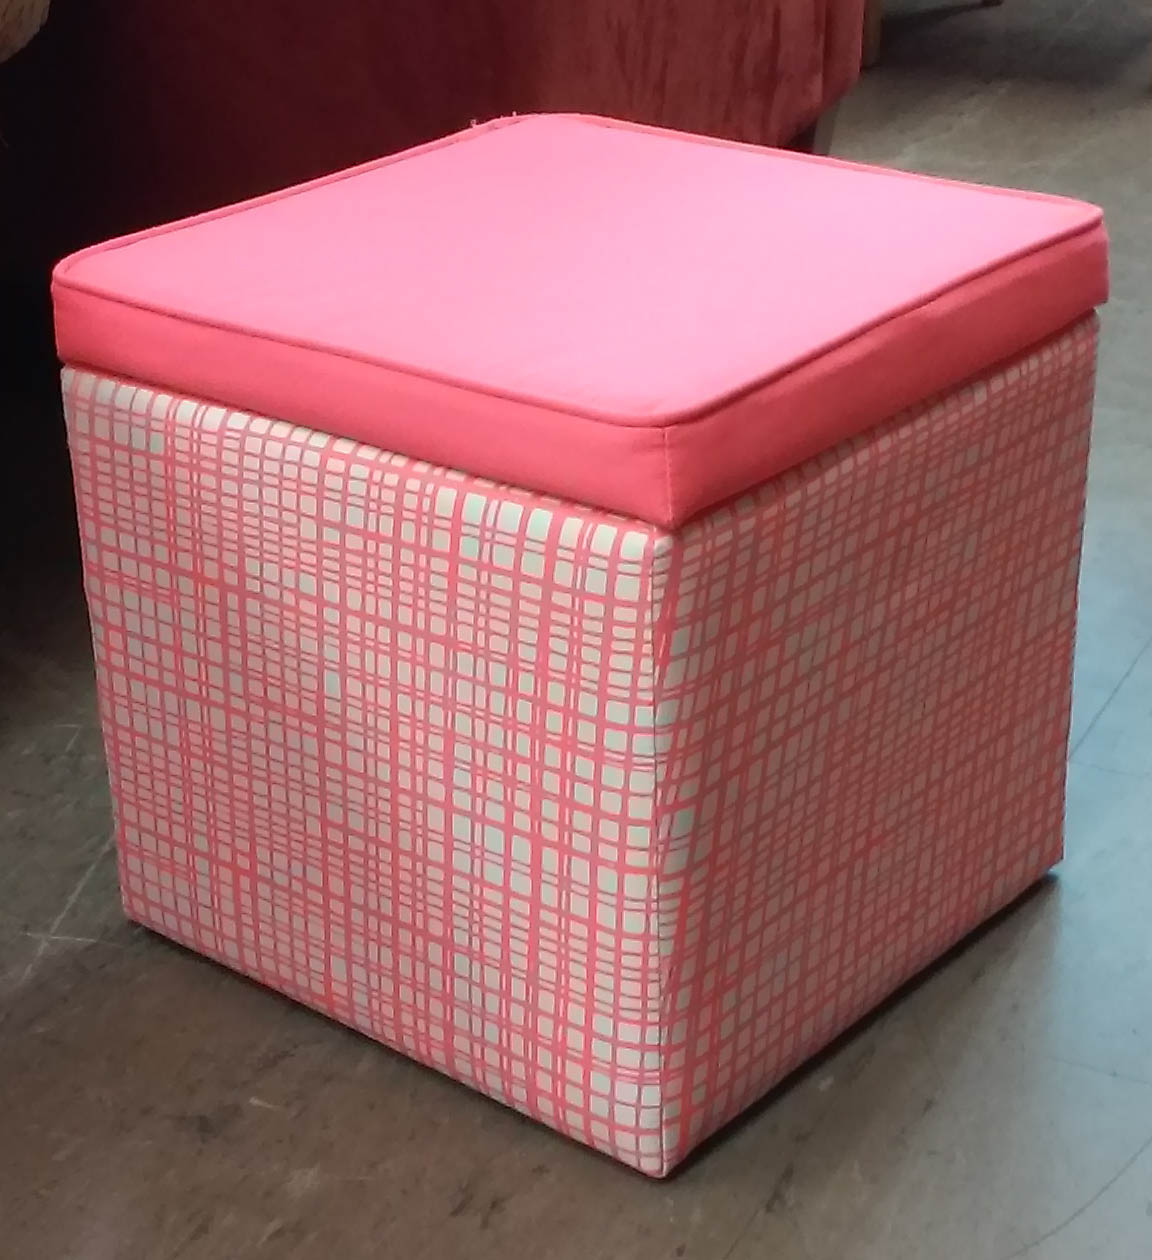 uhuru furniture collectibles sold reduced pink ottoman with storage 5